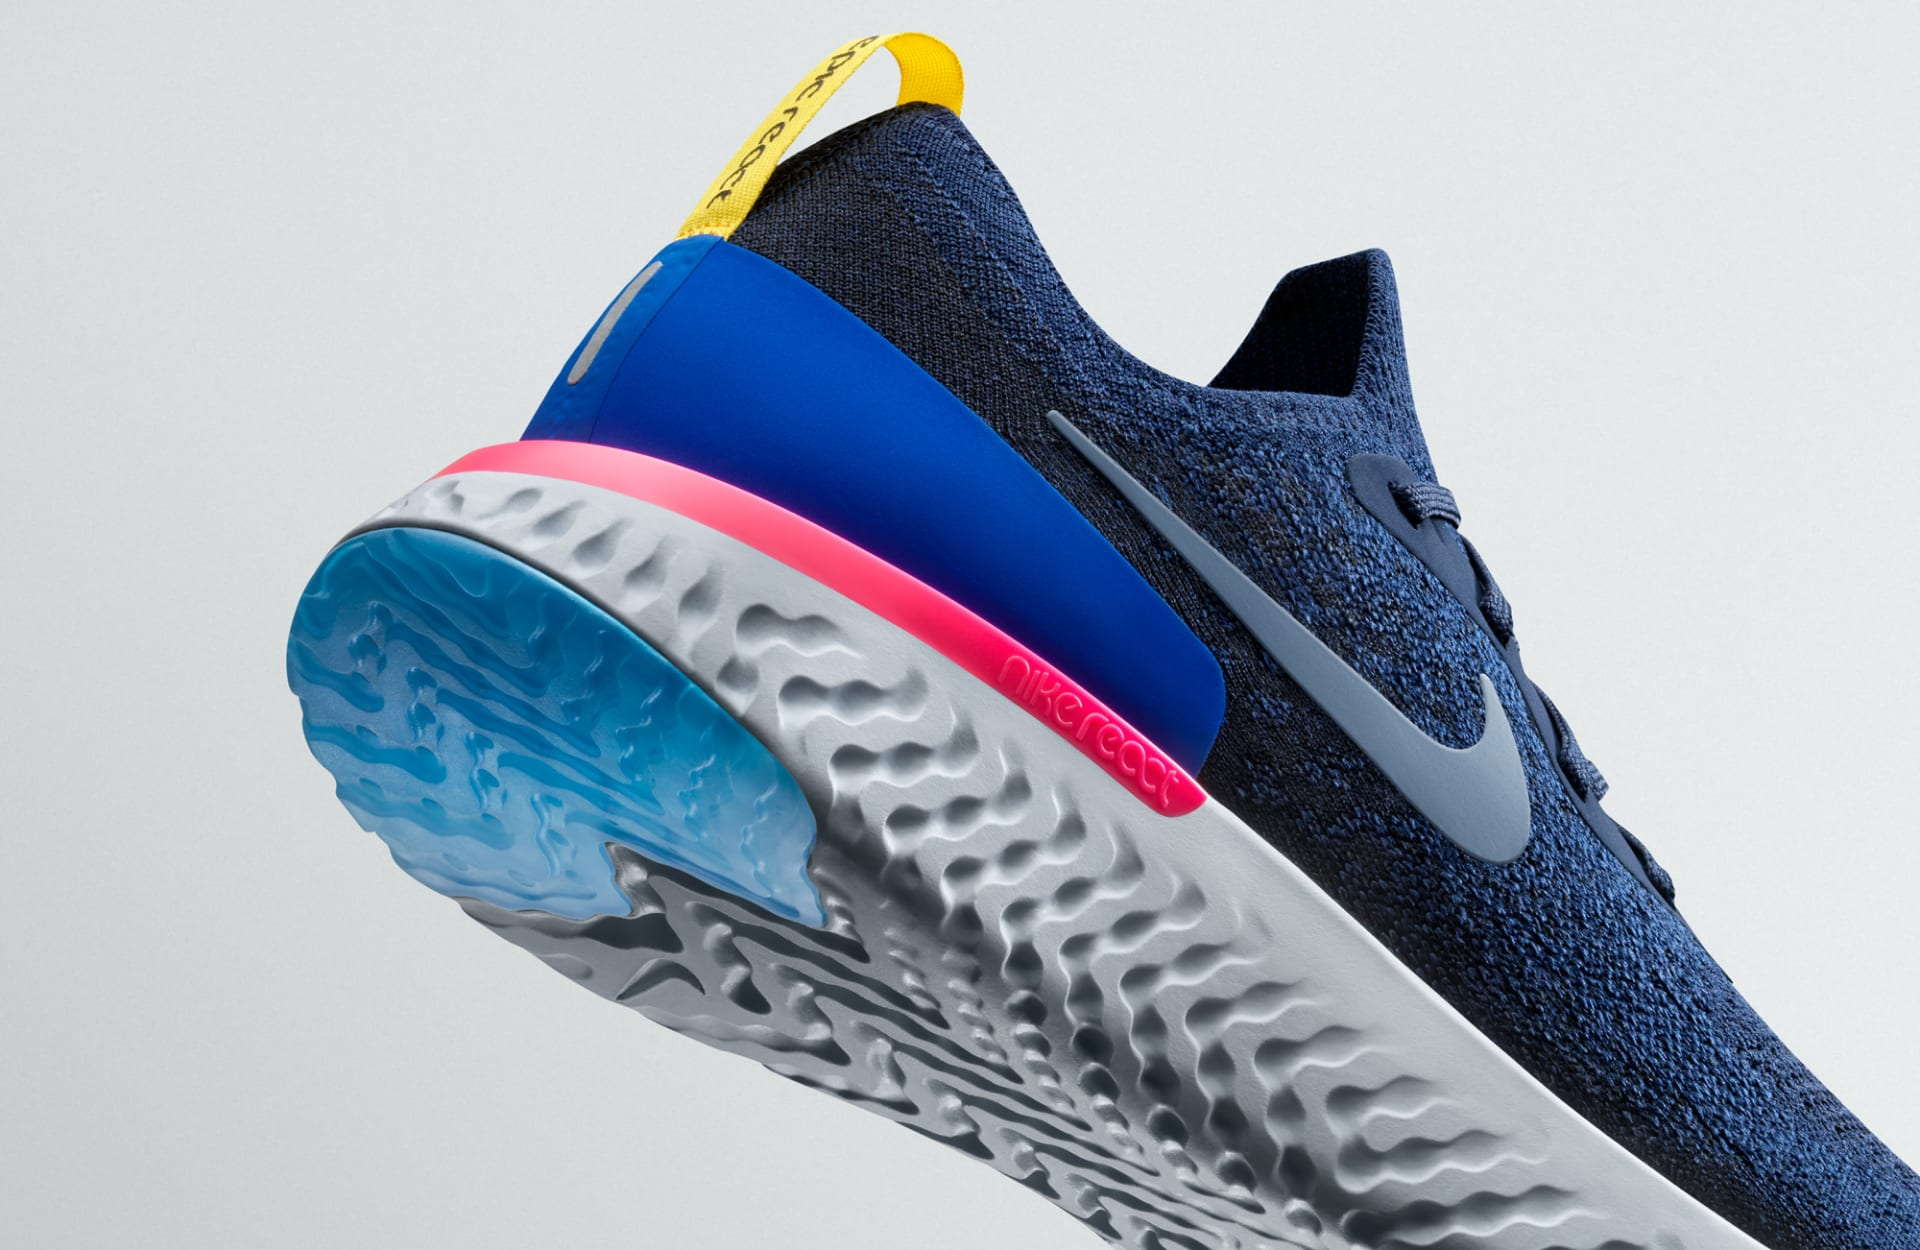 3f357cc91c6 Why the Nike Epic React Is the World s Next Great Performance ...